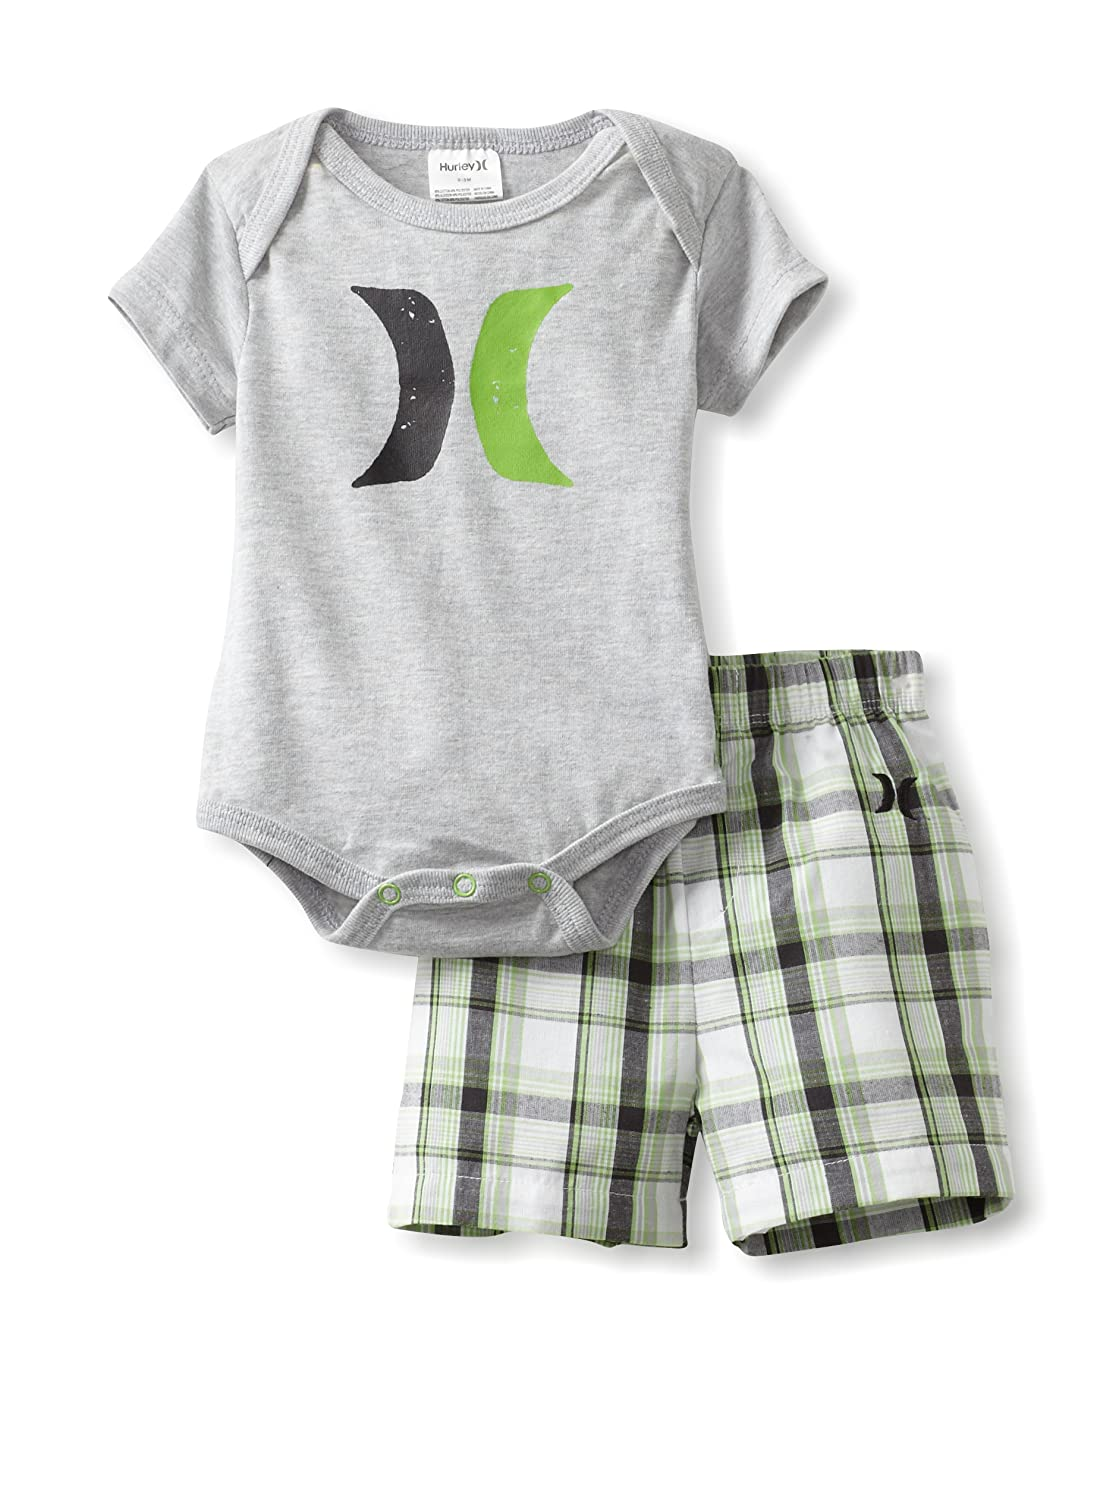 A Store Clothing Hurley Baby boys Newborn 2 Piece Set